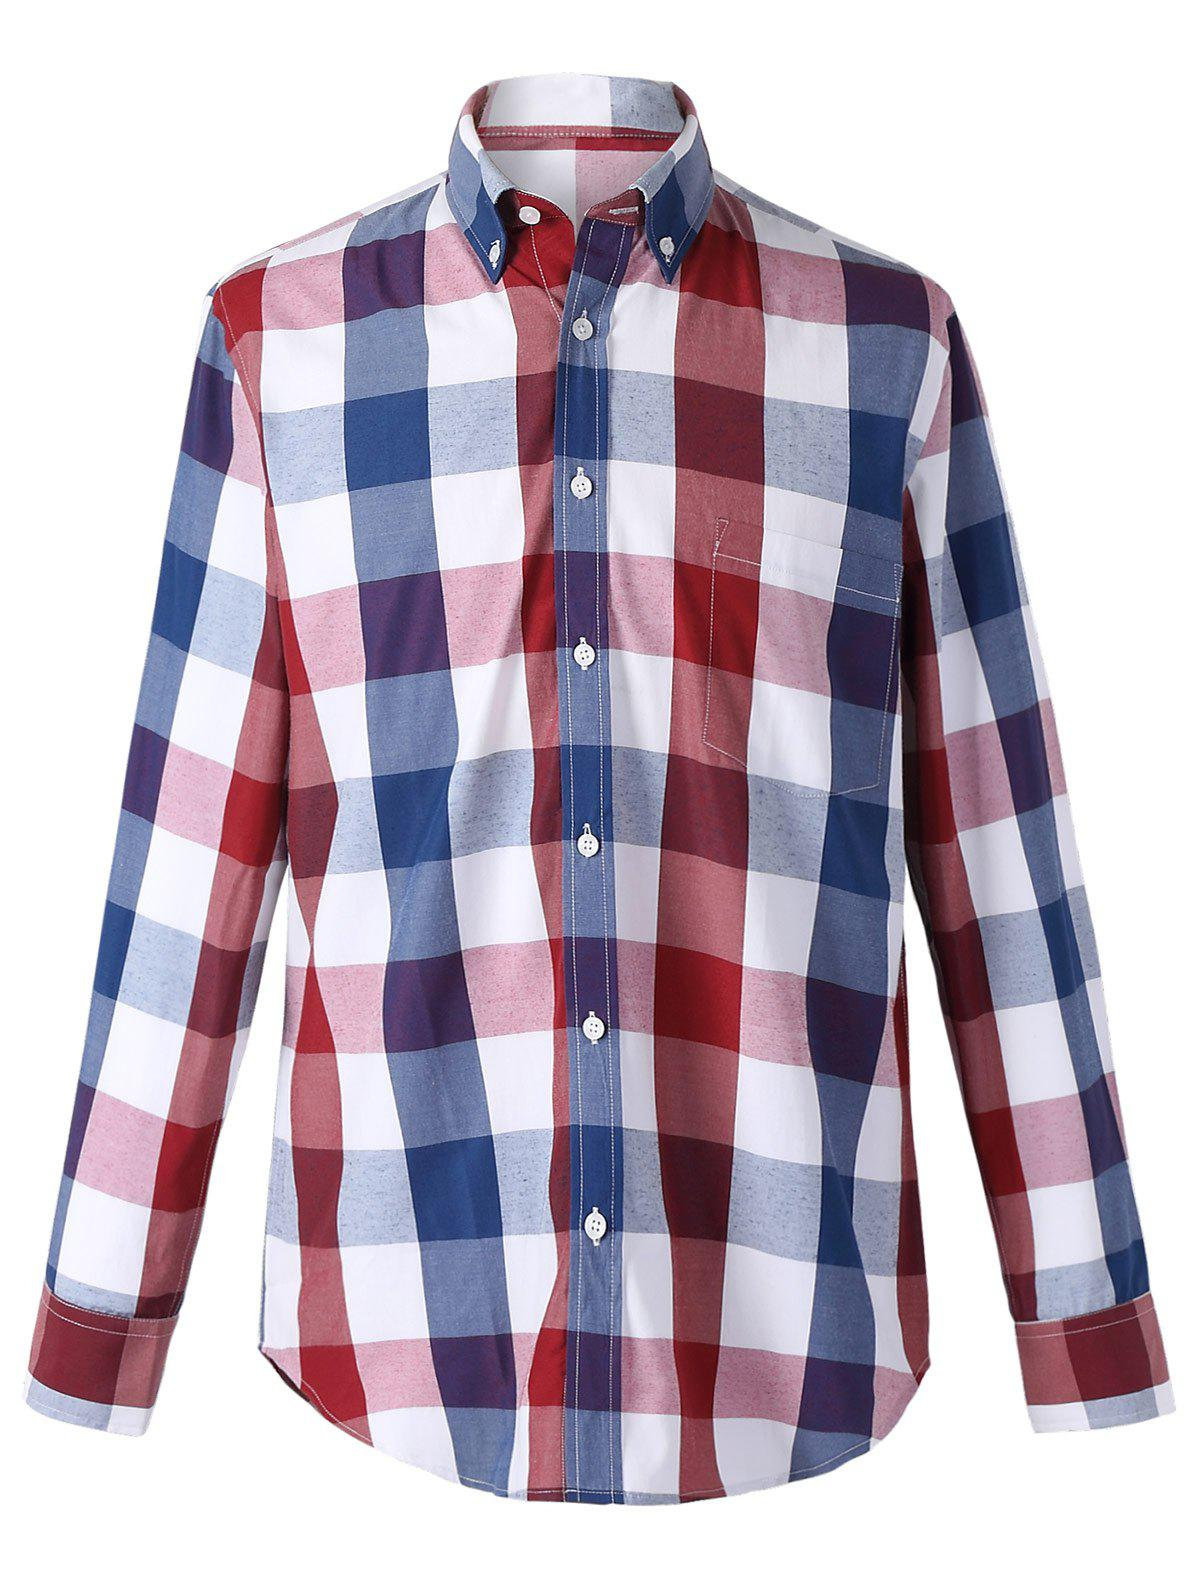 Classic Turn-Down Collar Long Sleeves Red and Blue Plaid Shirt For Men